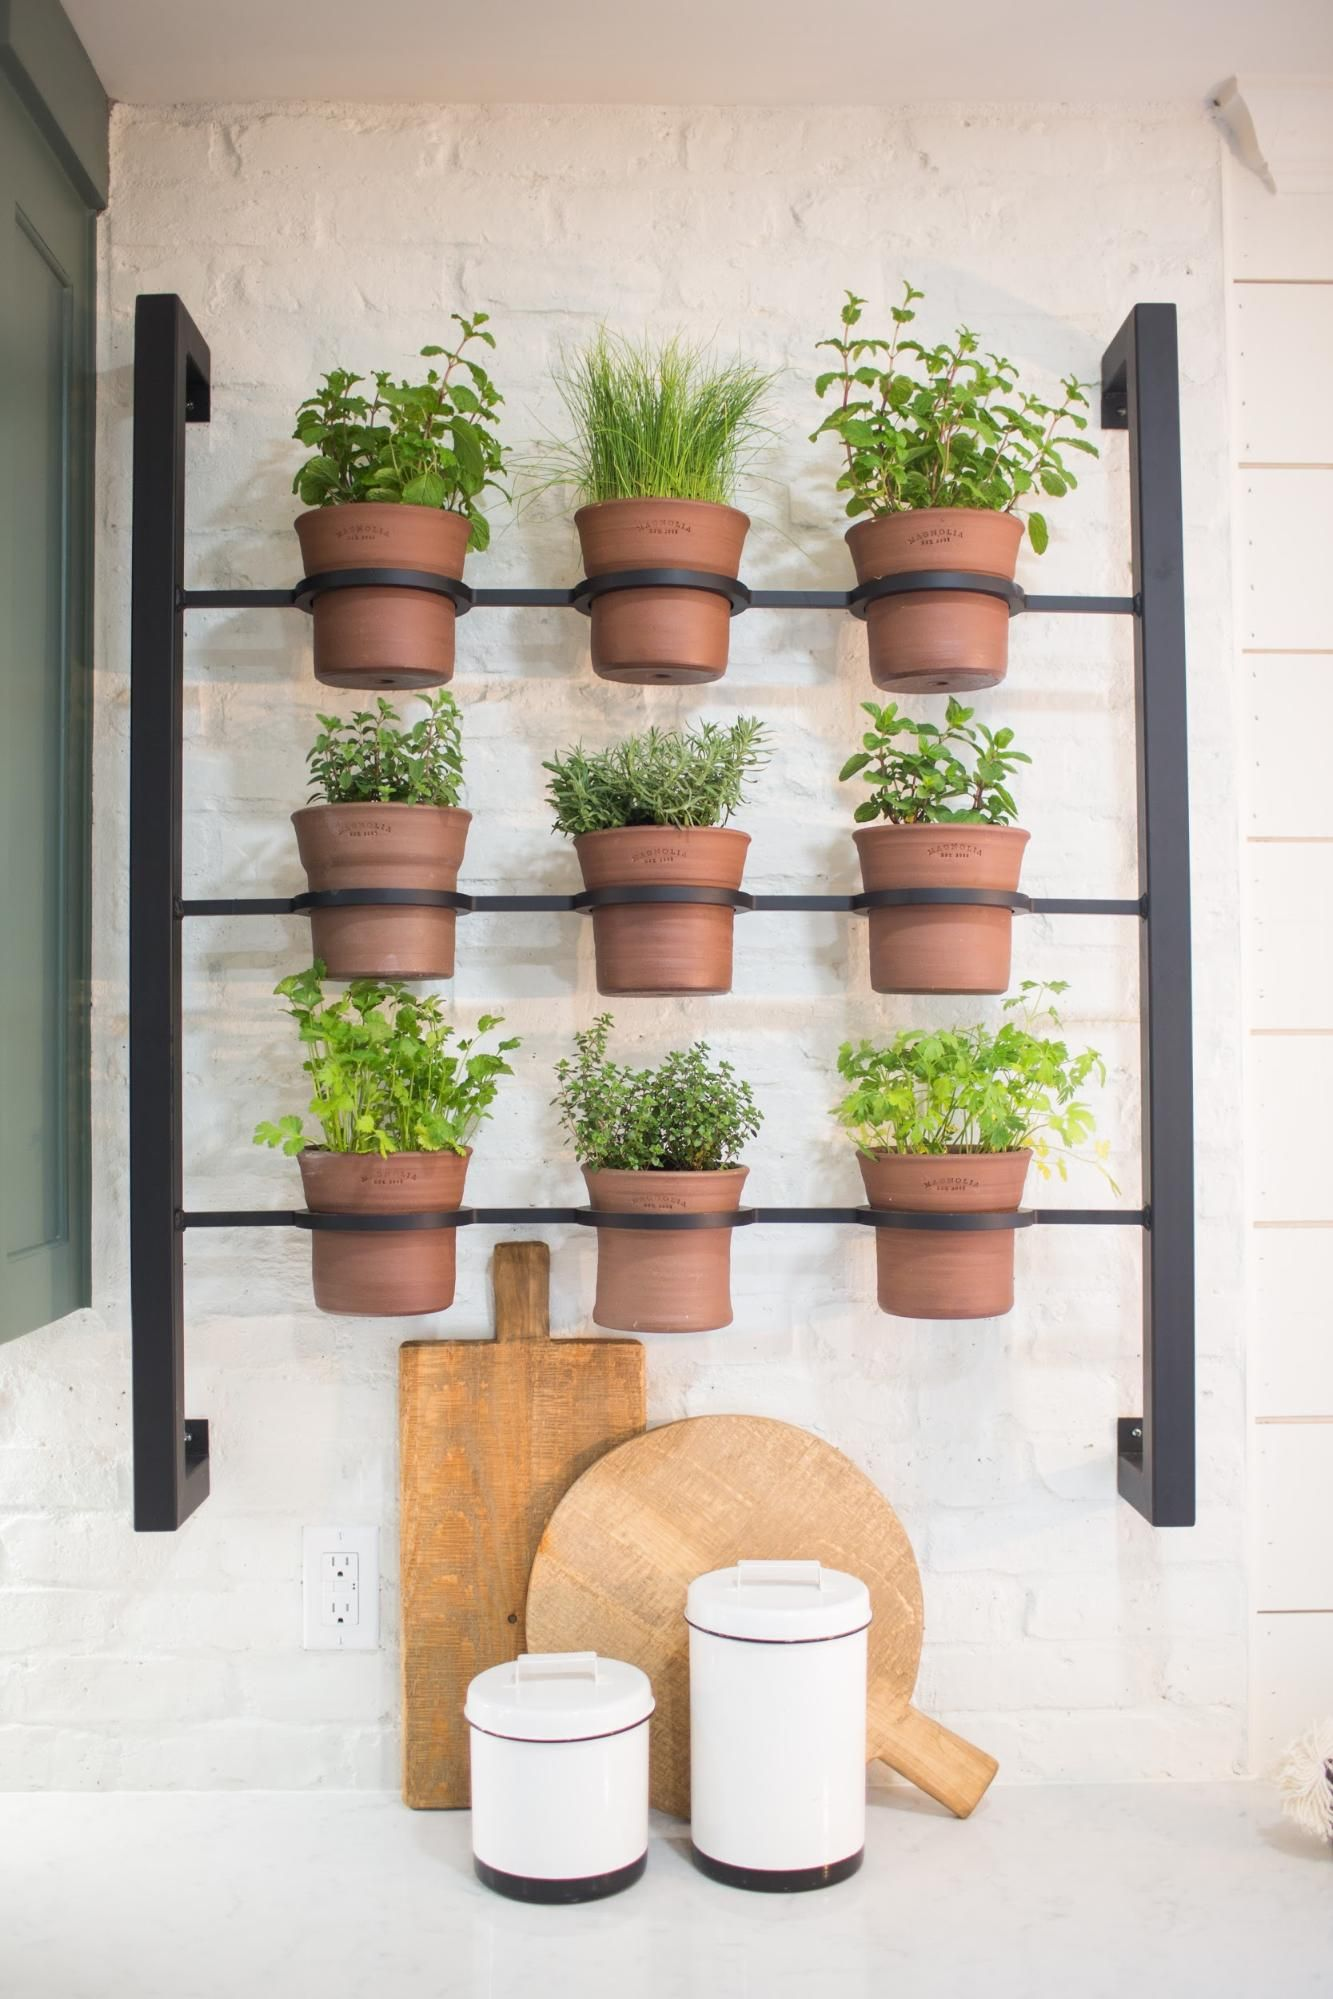 I designed this wall planter that my welder cody built and installed these terracotta pots that